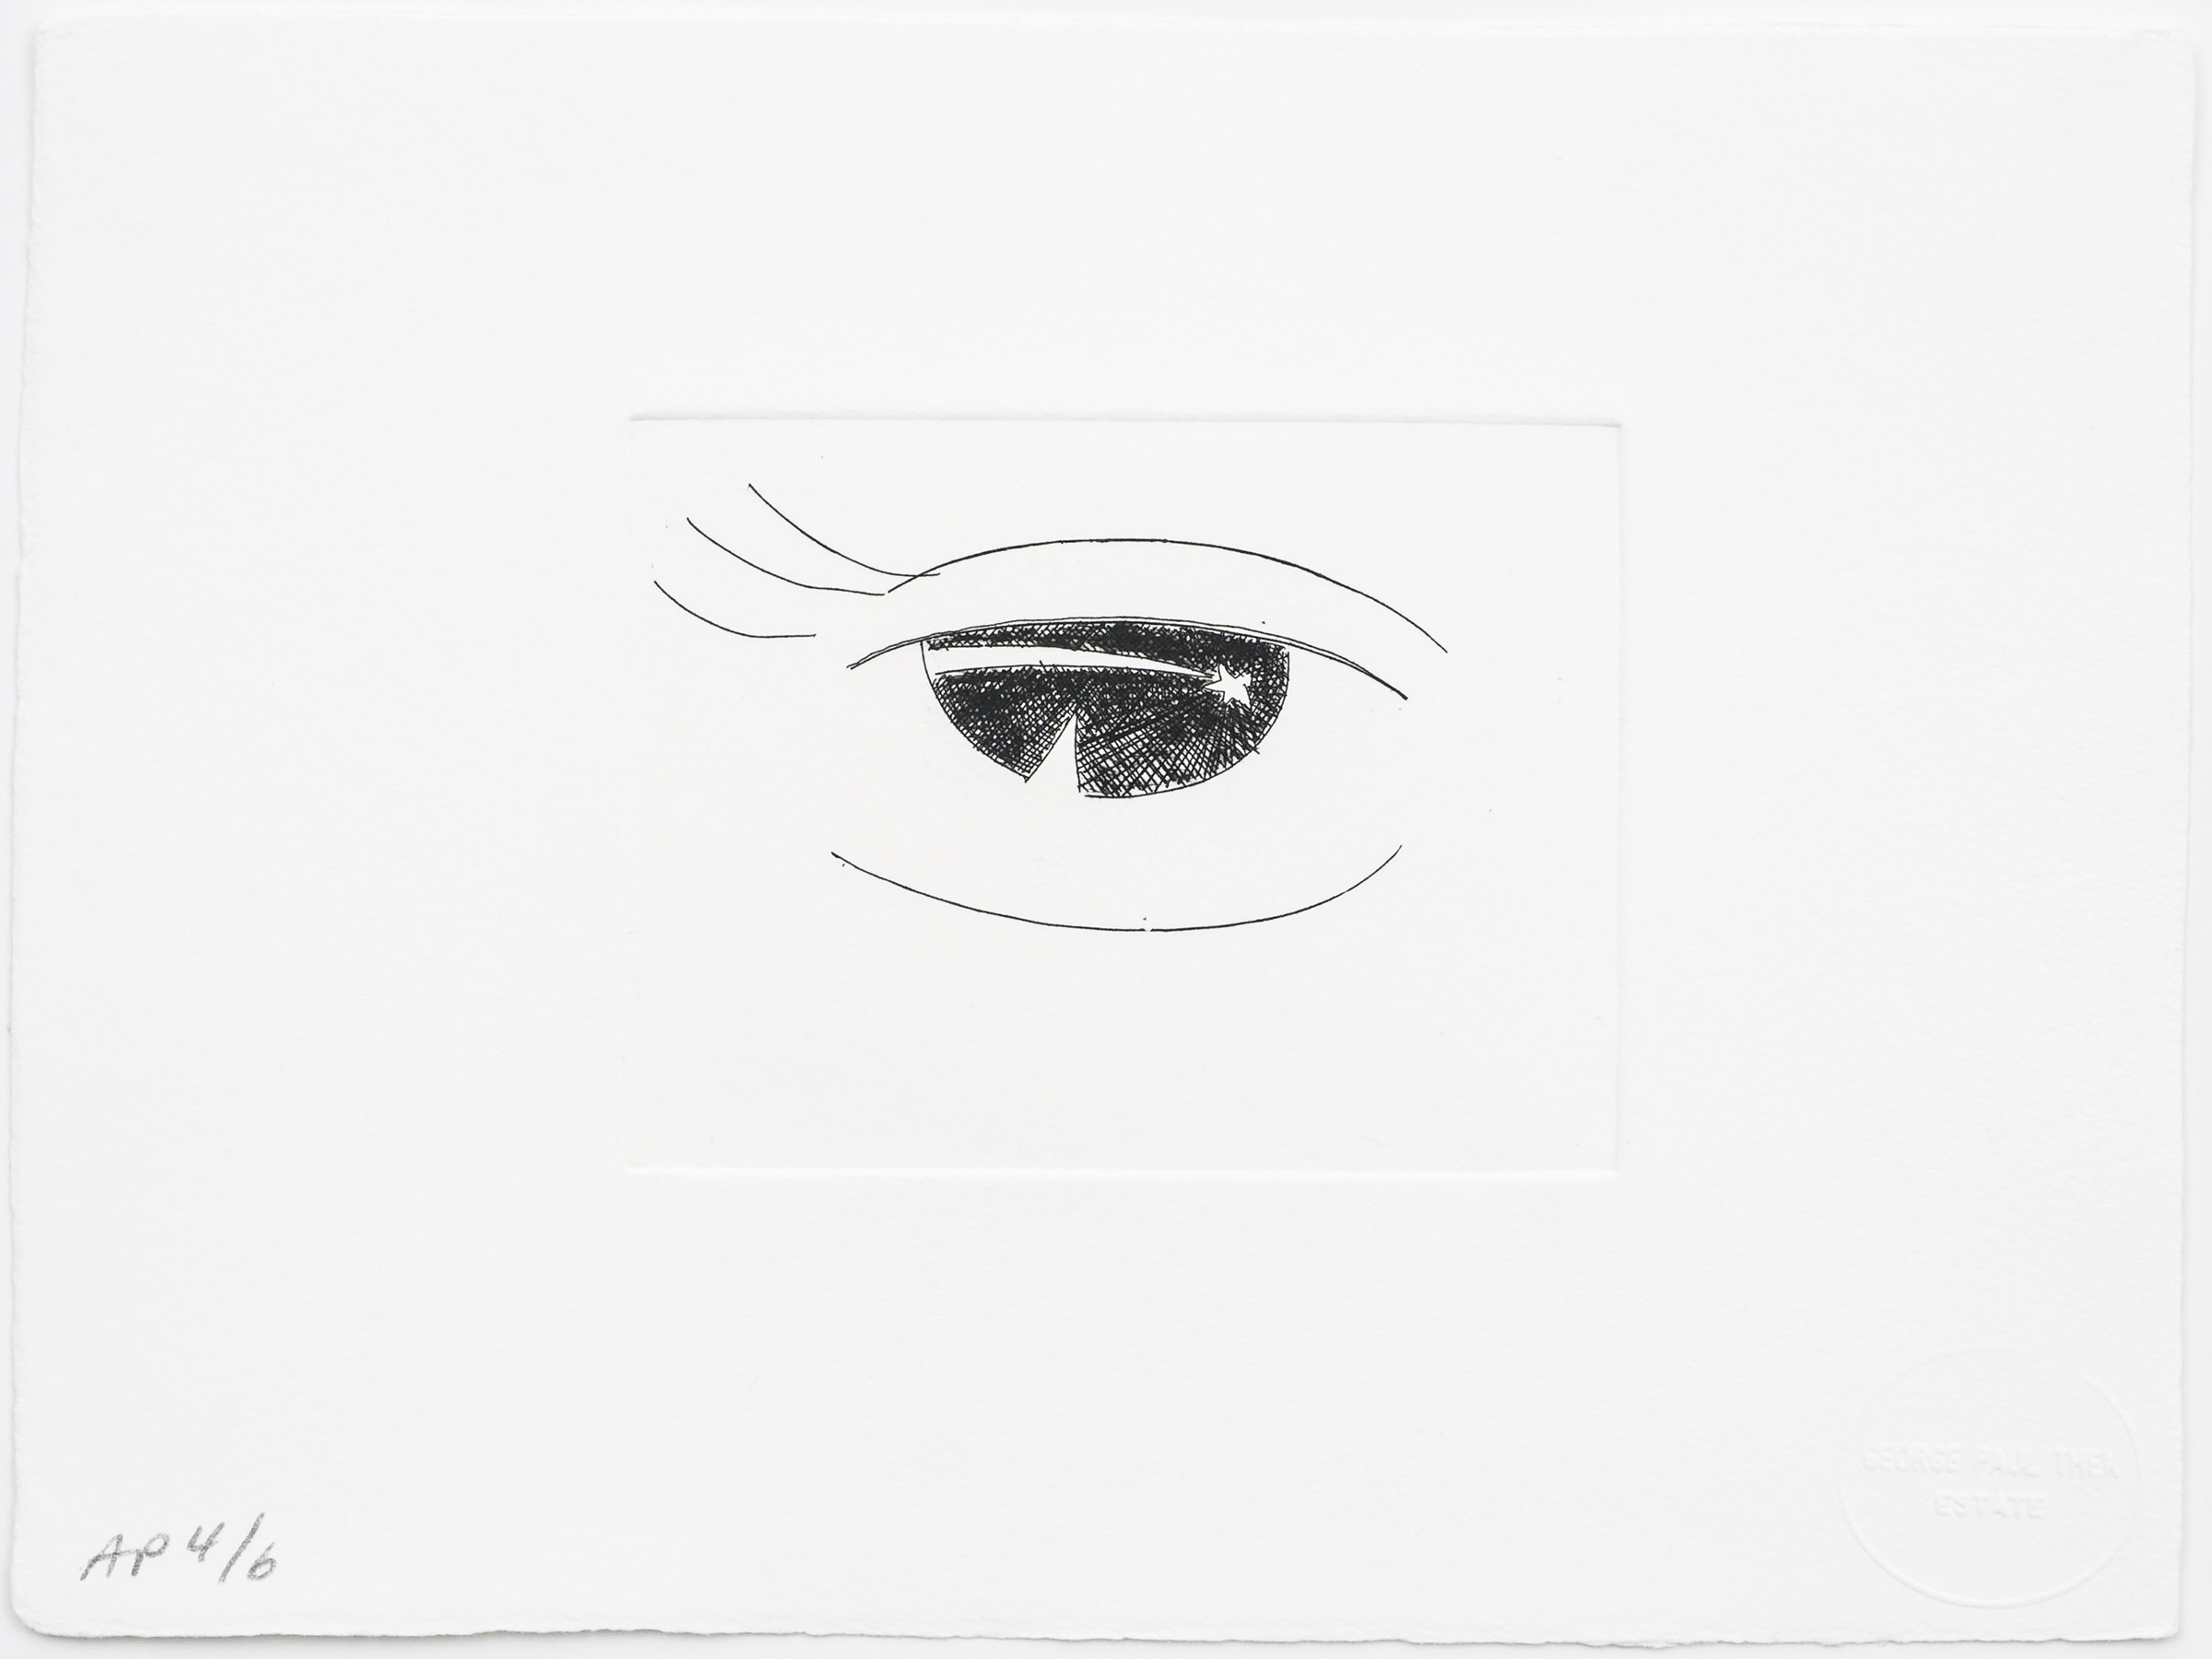 Paul Thek Untitled (Eye)